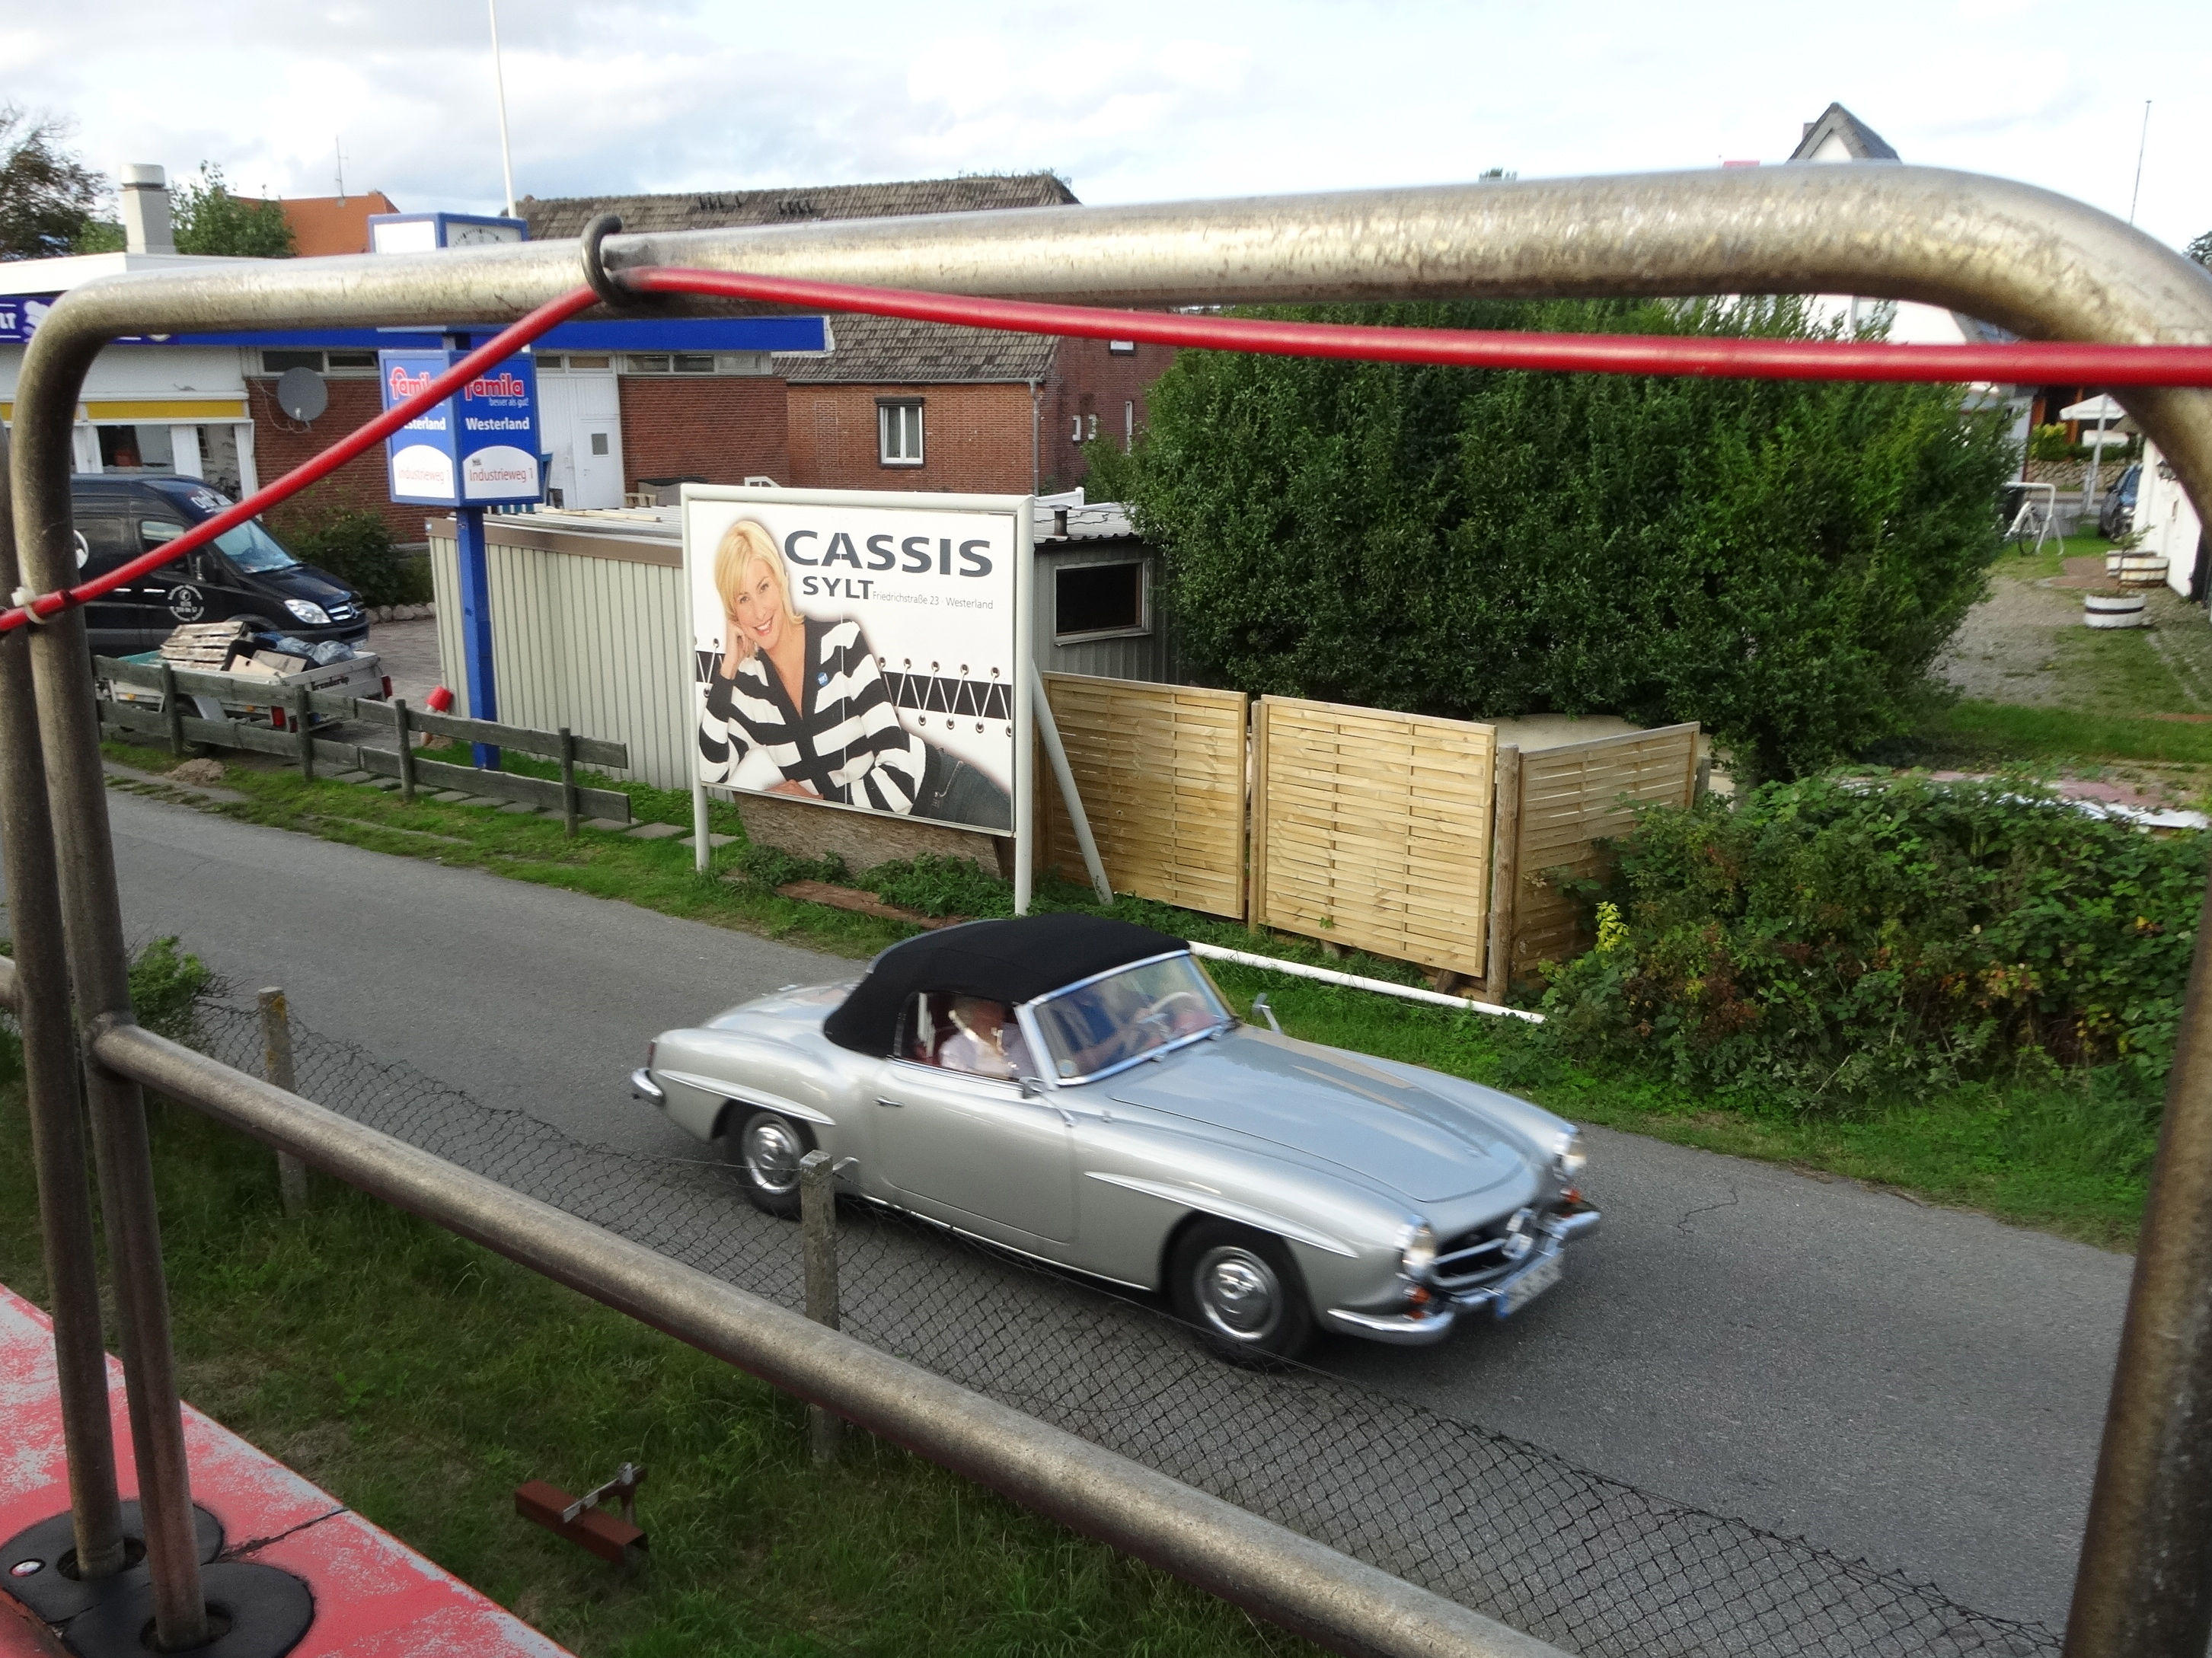 Mercedes 190 SL leaving the train